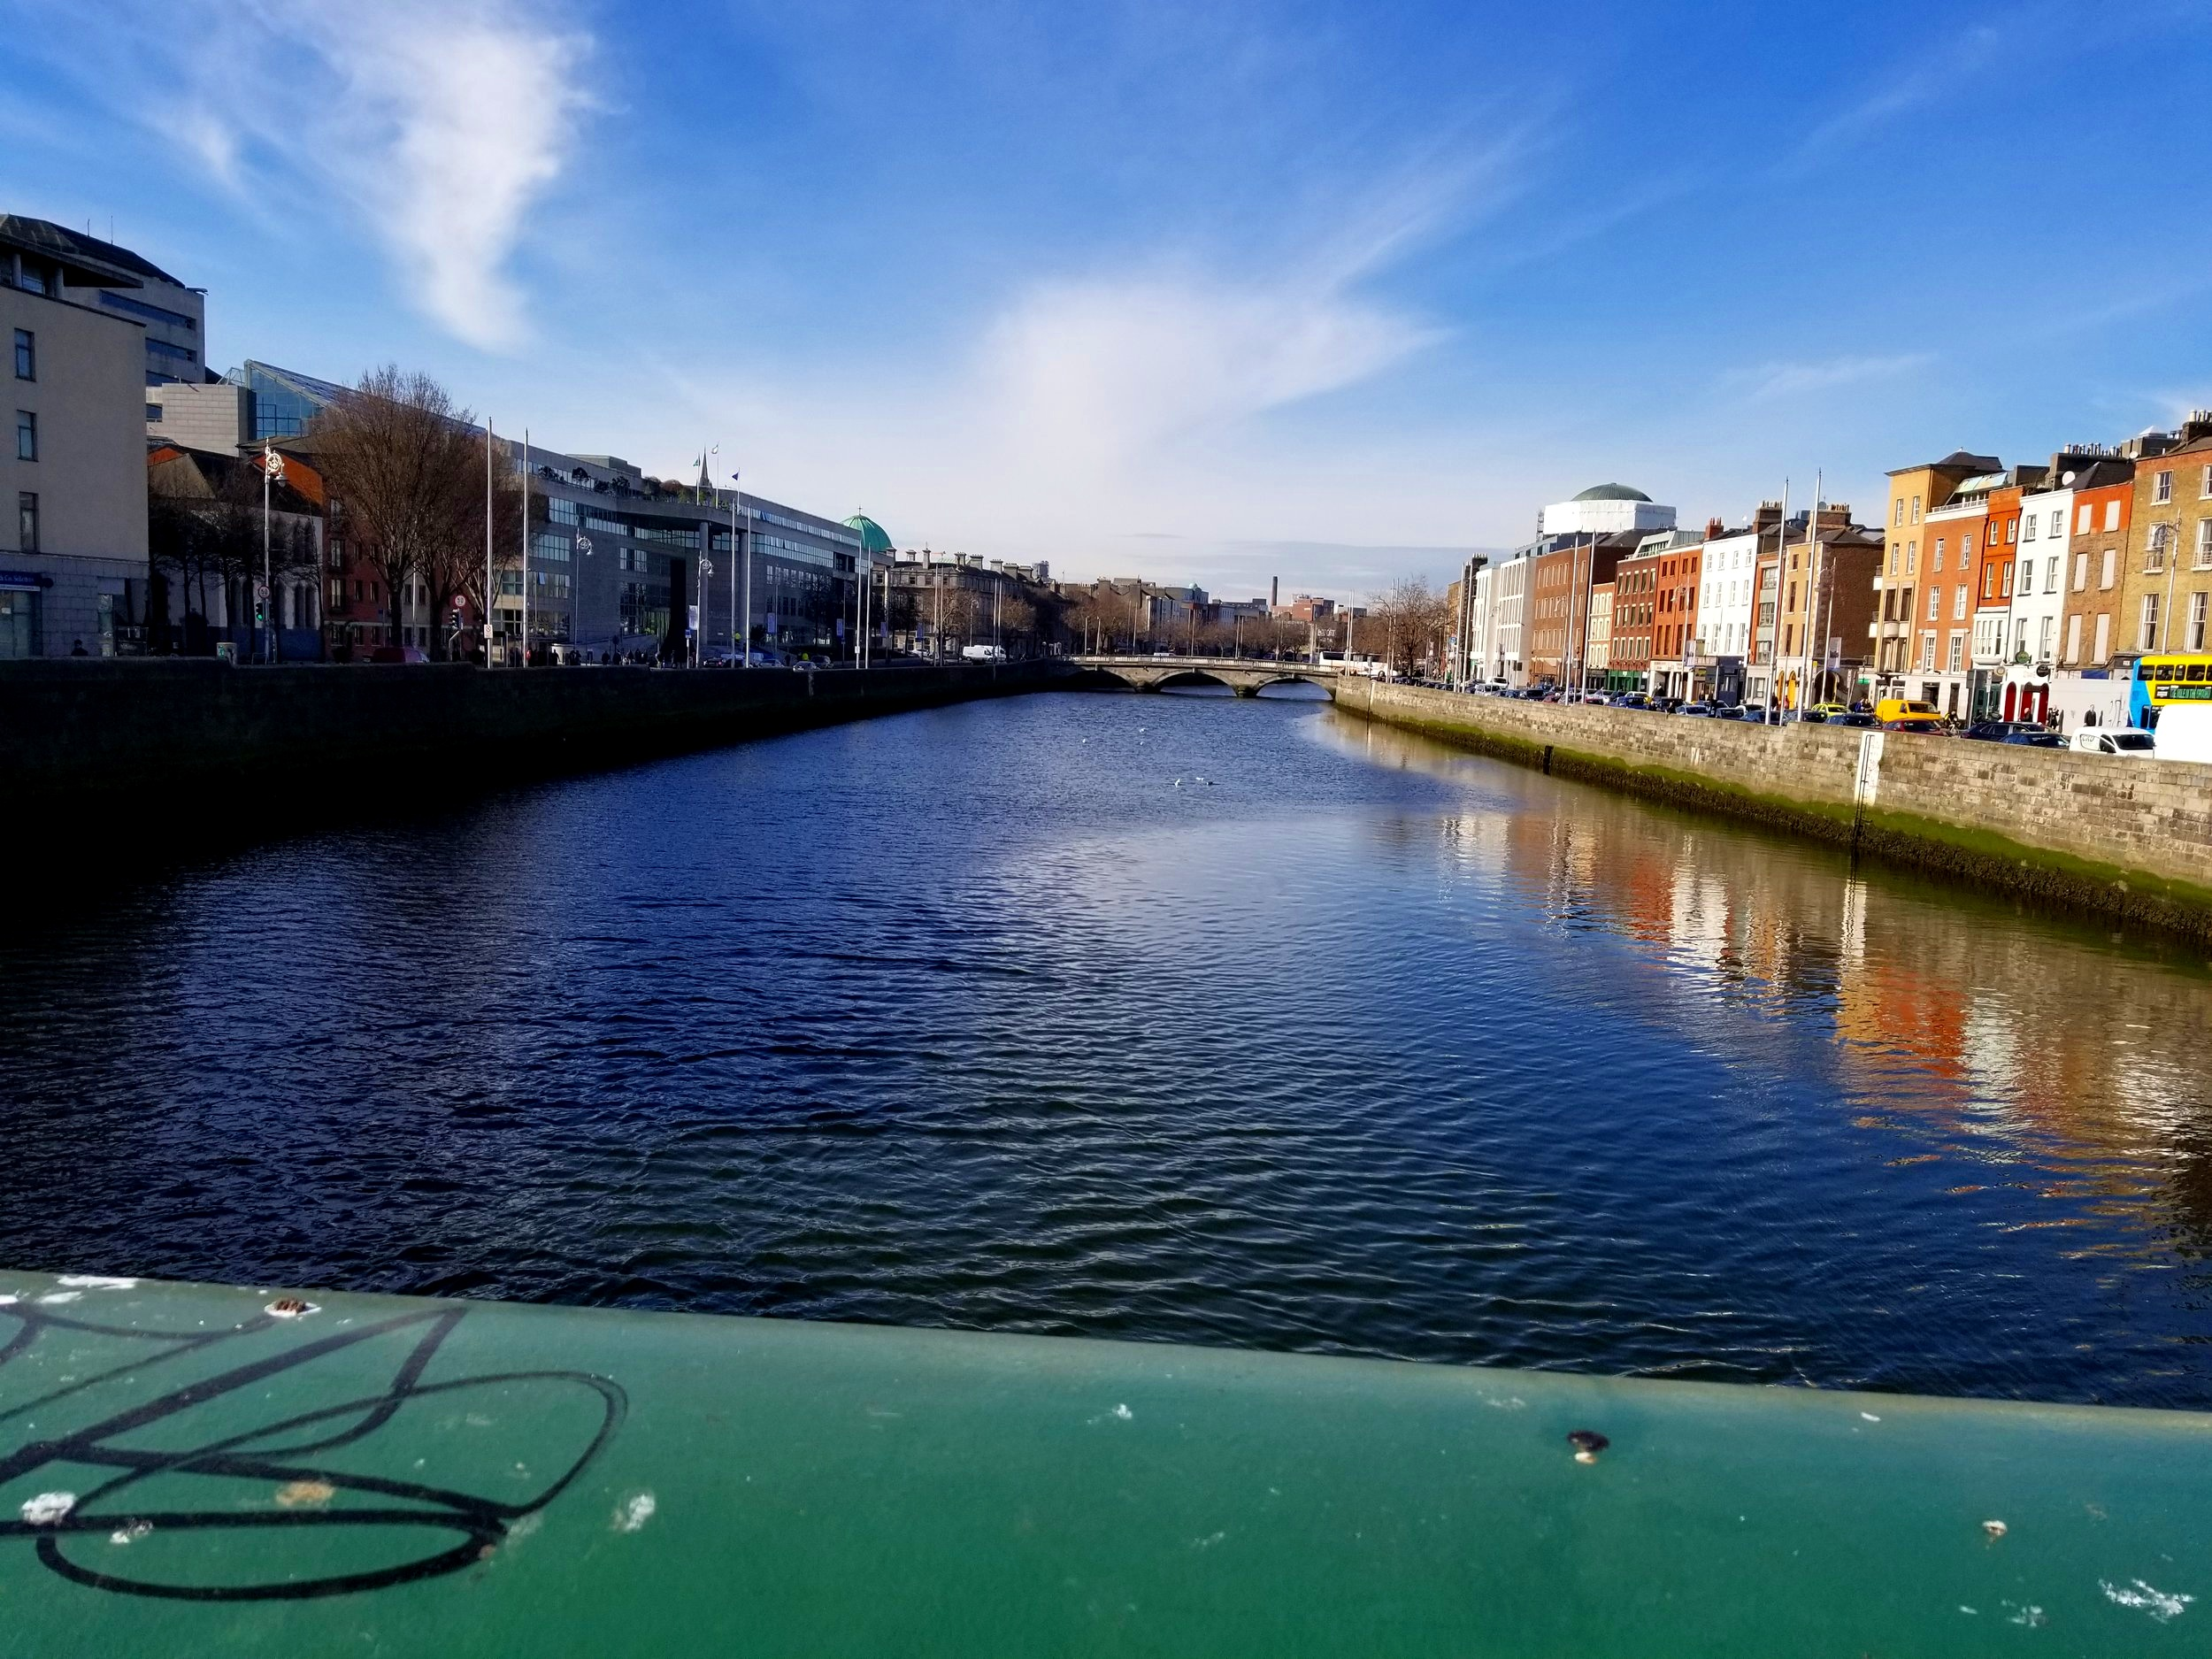 River Liffey, Dublin, Ireland